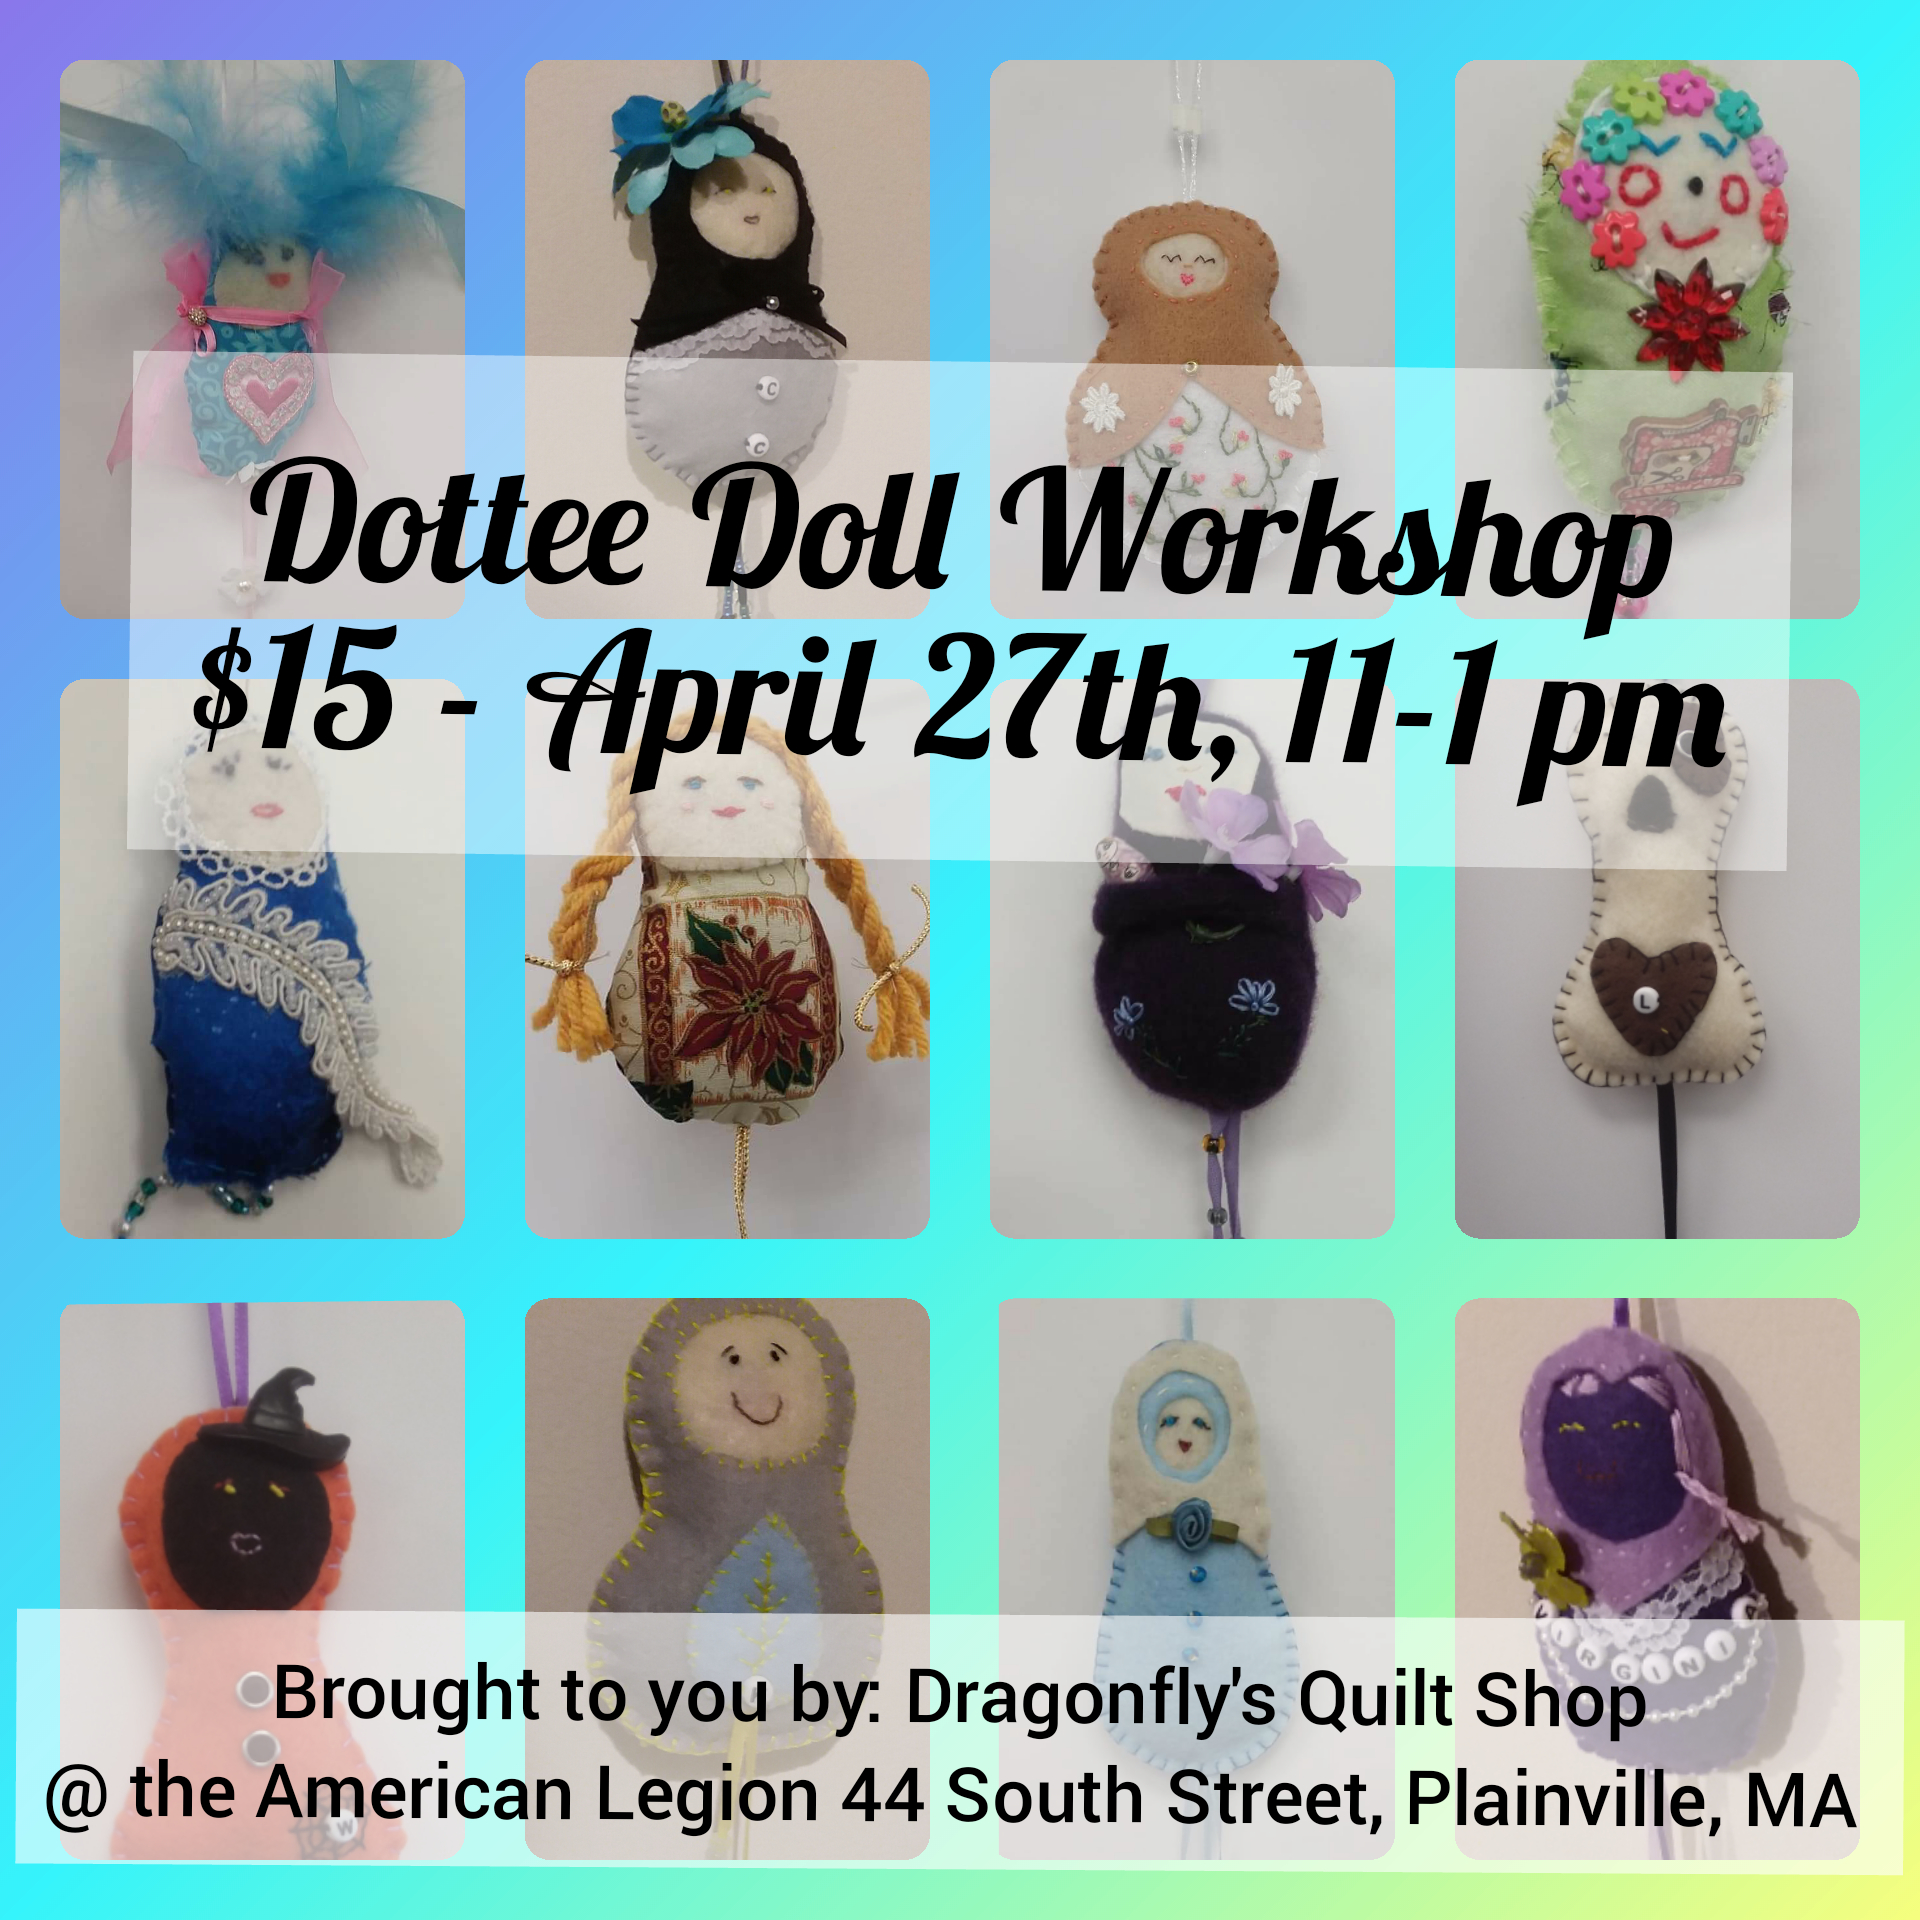 Dottee Doll workshop April 27th 11-1pm